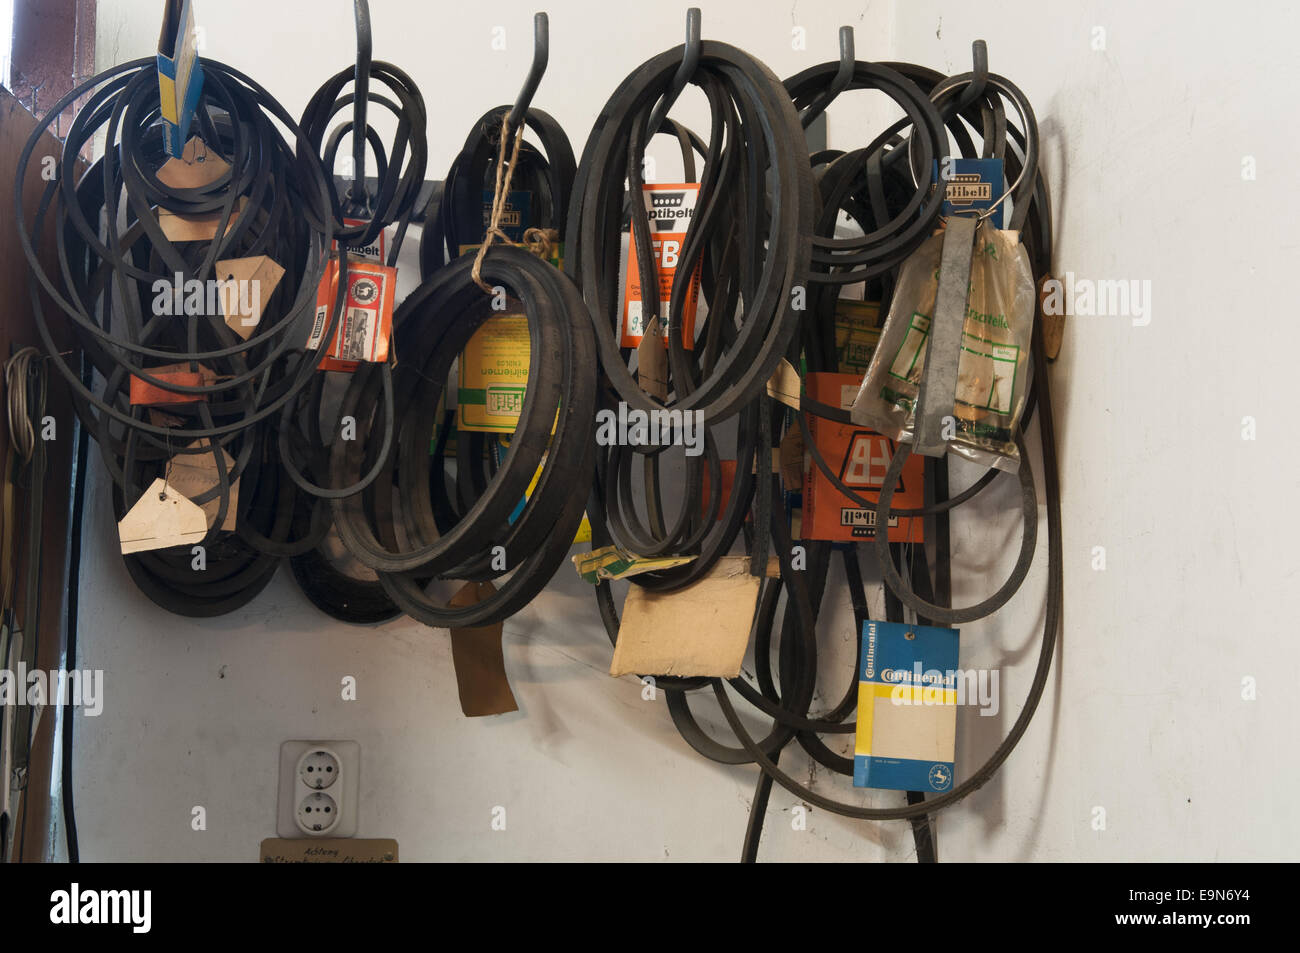 Fan Belts in a Ironware Shop - Stock Image